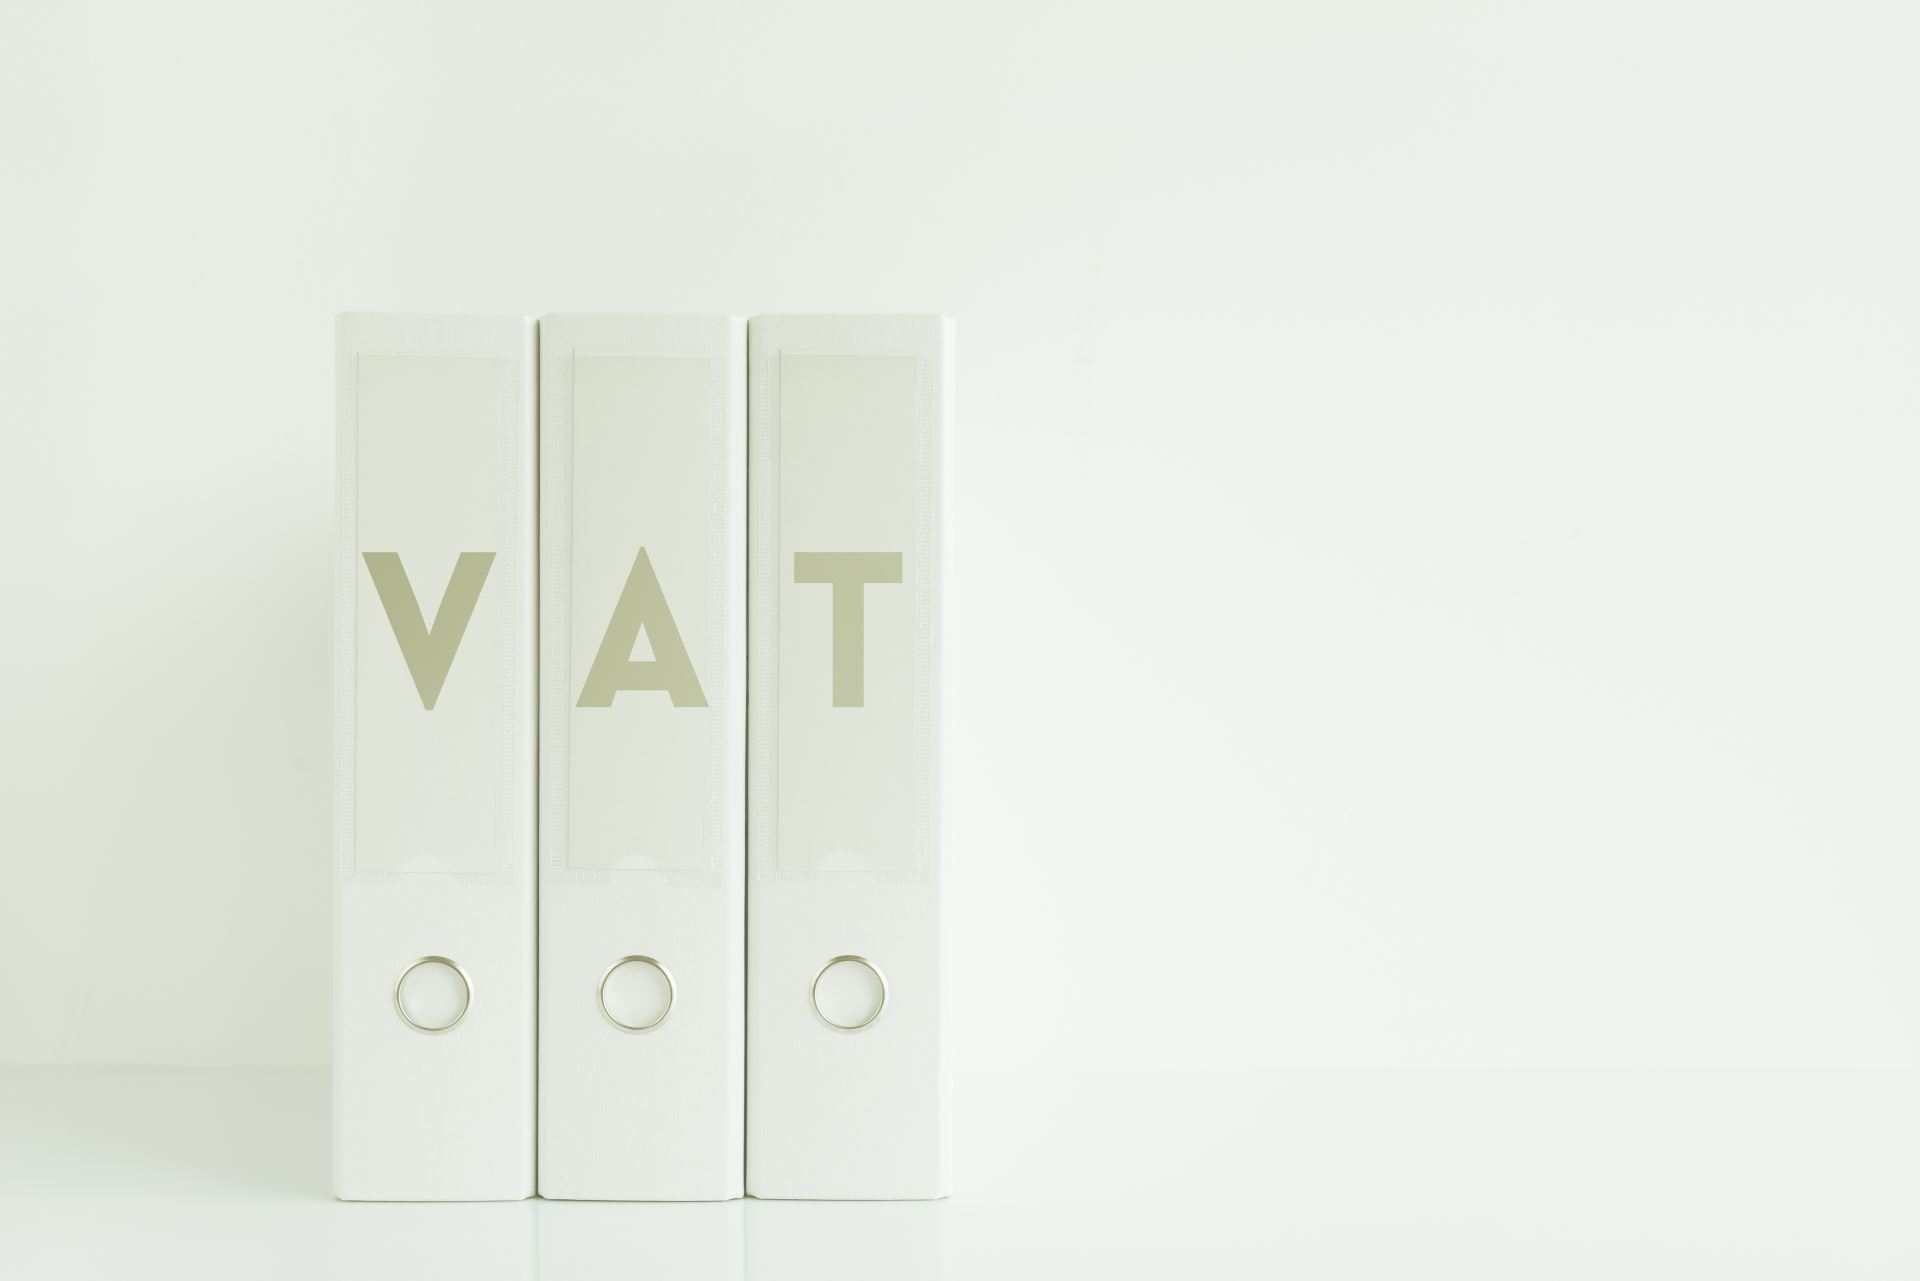 Information about VAT in the UAE